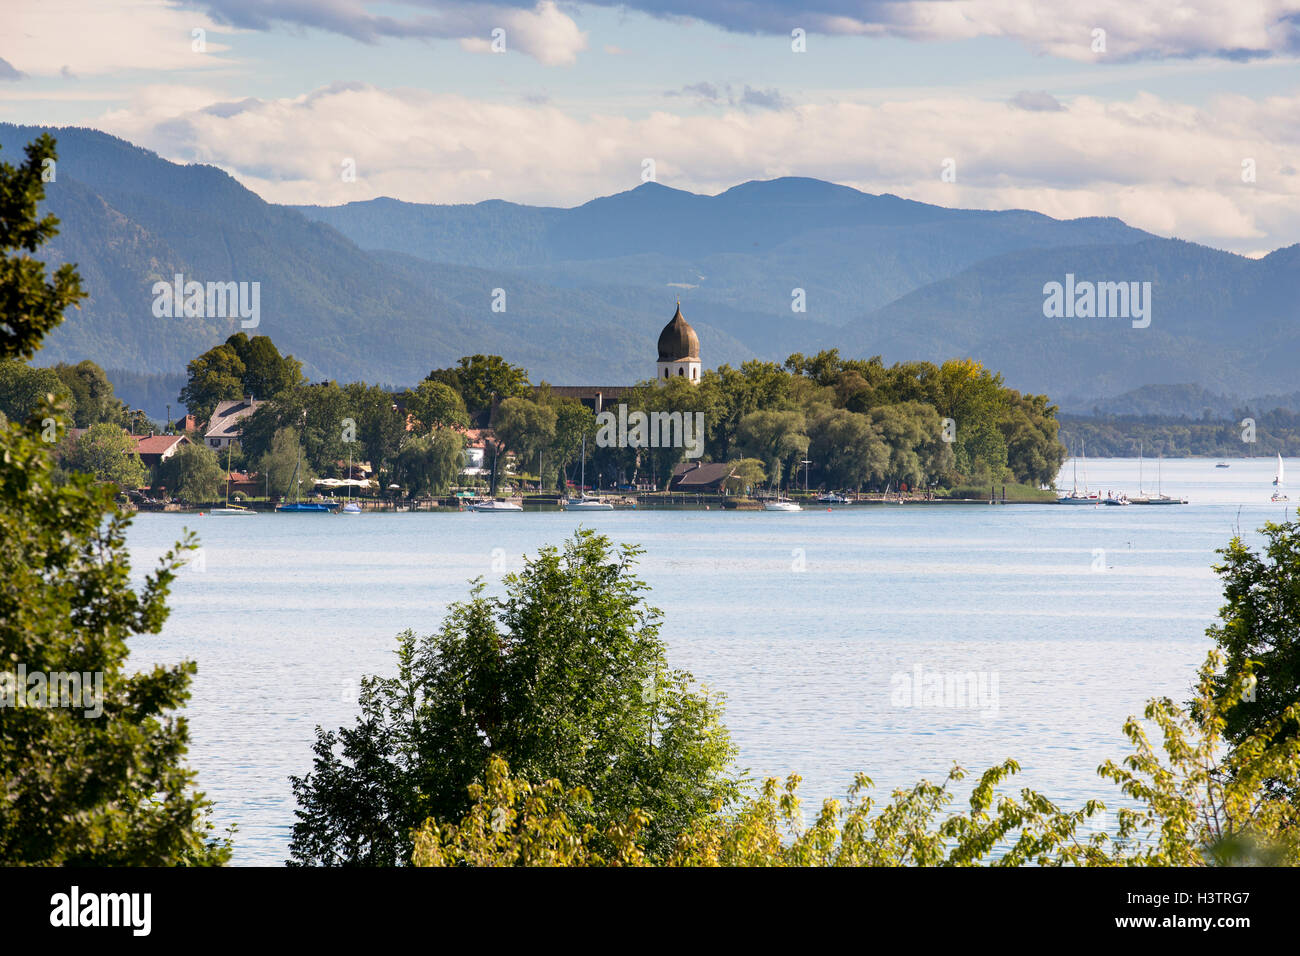 View of the Fraueninsel, Gstadt, Chiemsee, Bavaria, Germany Stock Photo